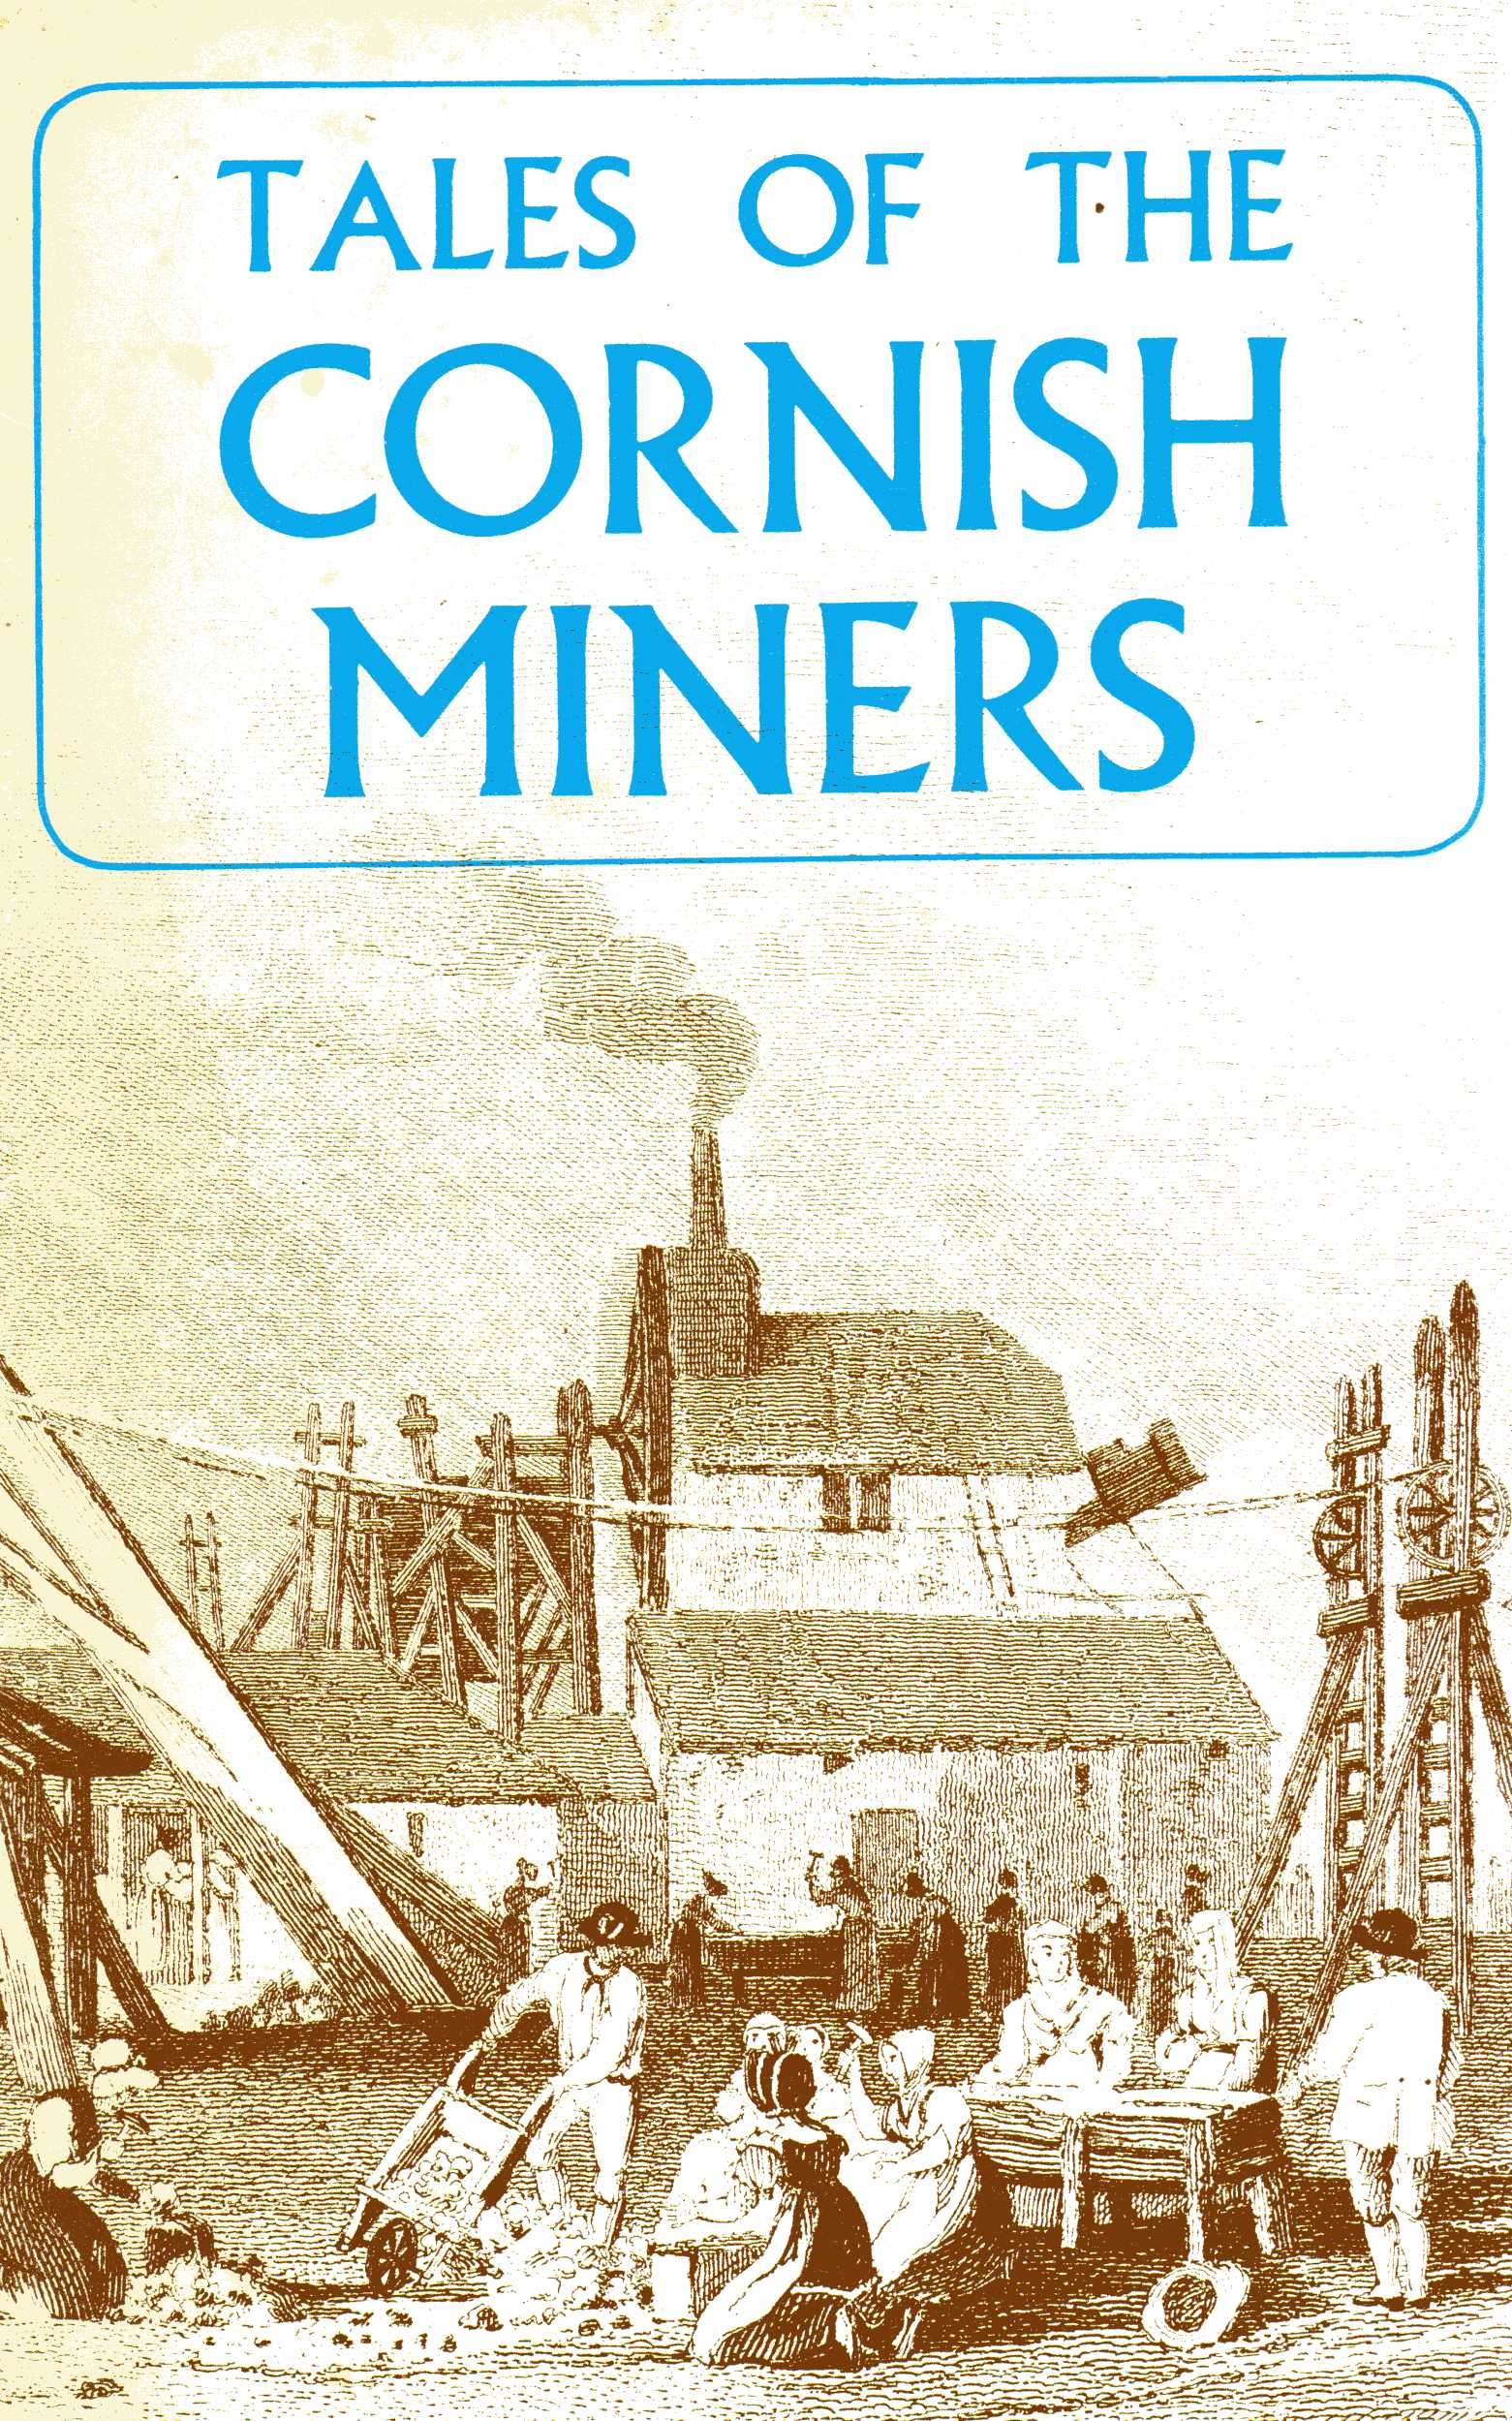 [USED] Tales of the Cornish Miners